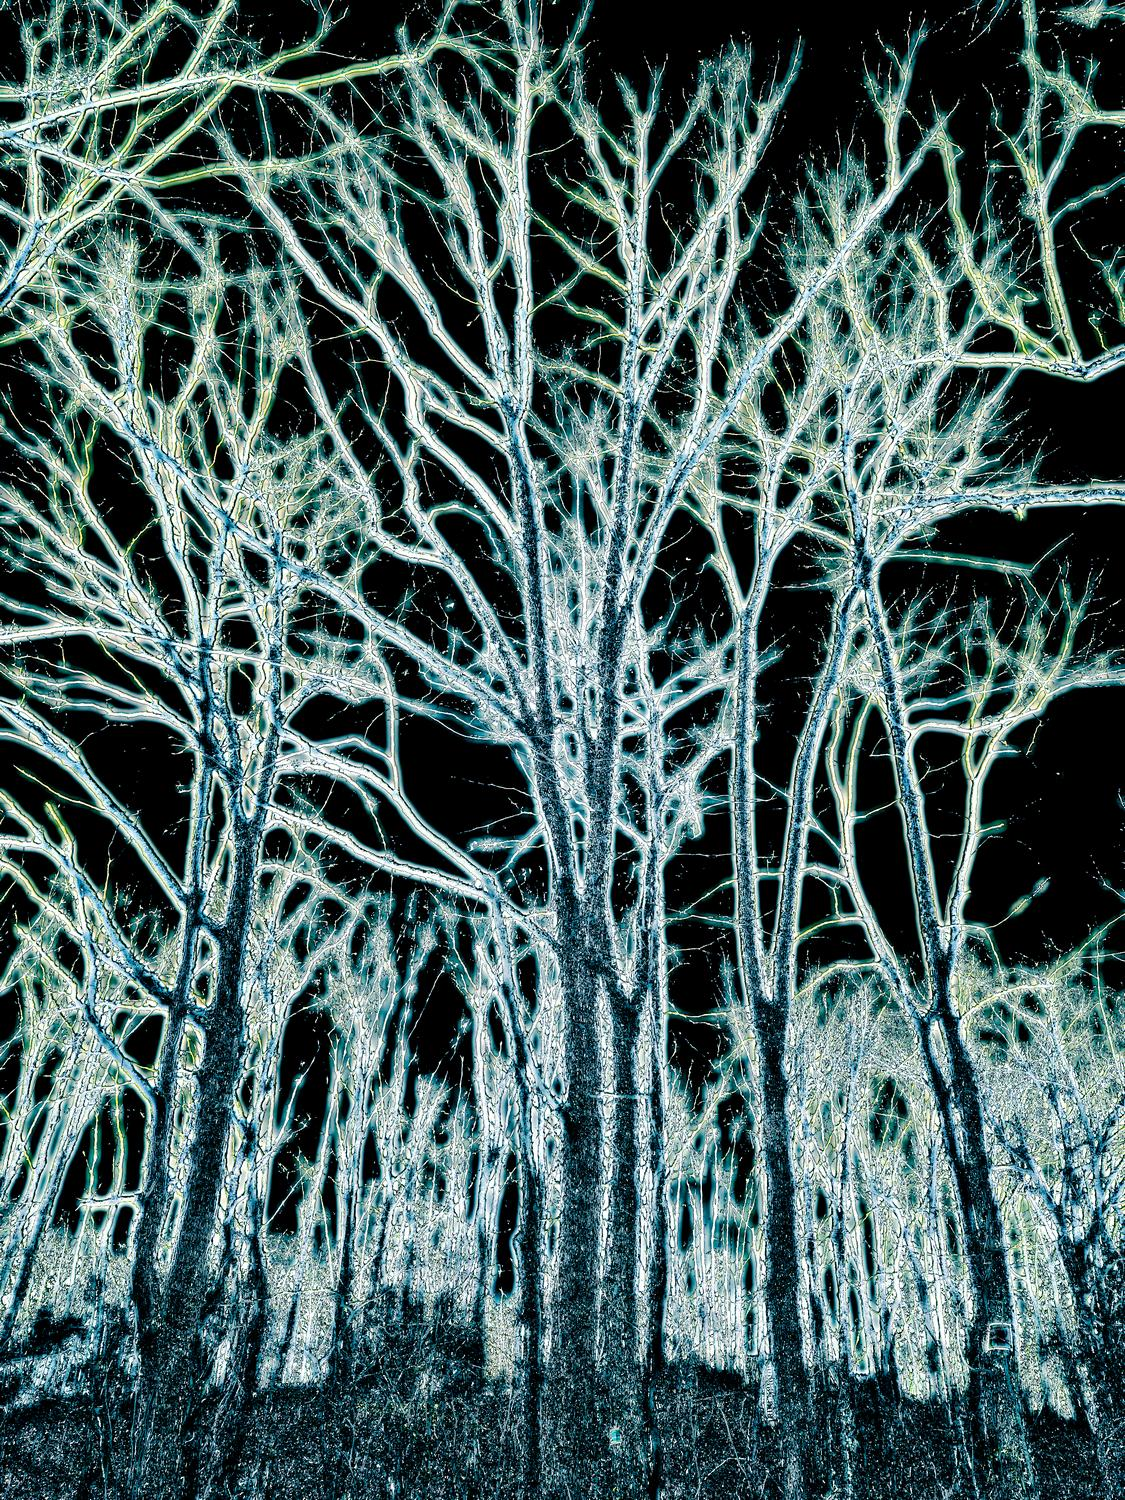 - The dreams of winter trees <br>--- Click to see ORIGINAL --- - -  Panasonic DMC-FZ150 - - Tony Karp, design, art, photography, techno-impressionist, techno-impressionism, aerial photography , drone , drones , dji , mavic pro , video , 3D printing - Books -